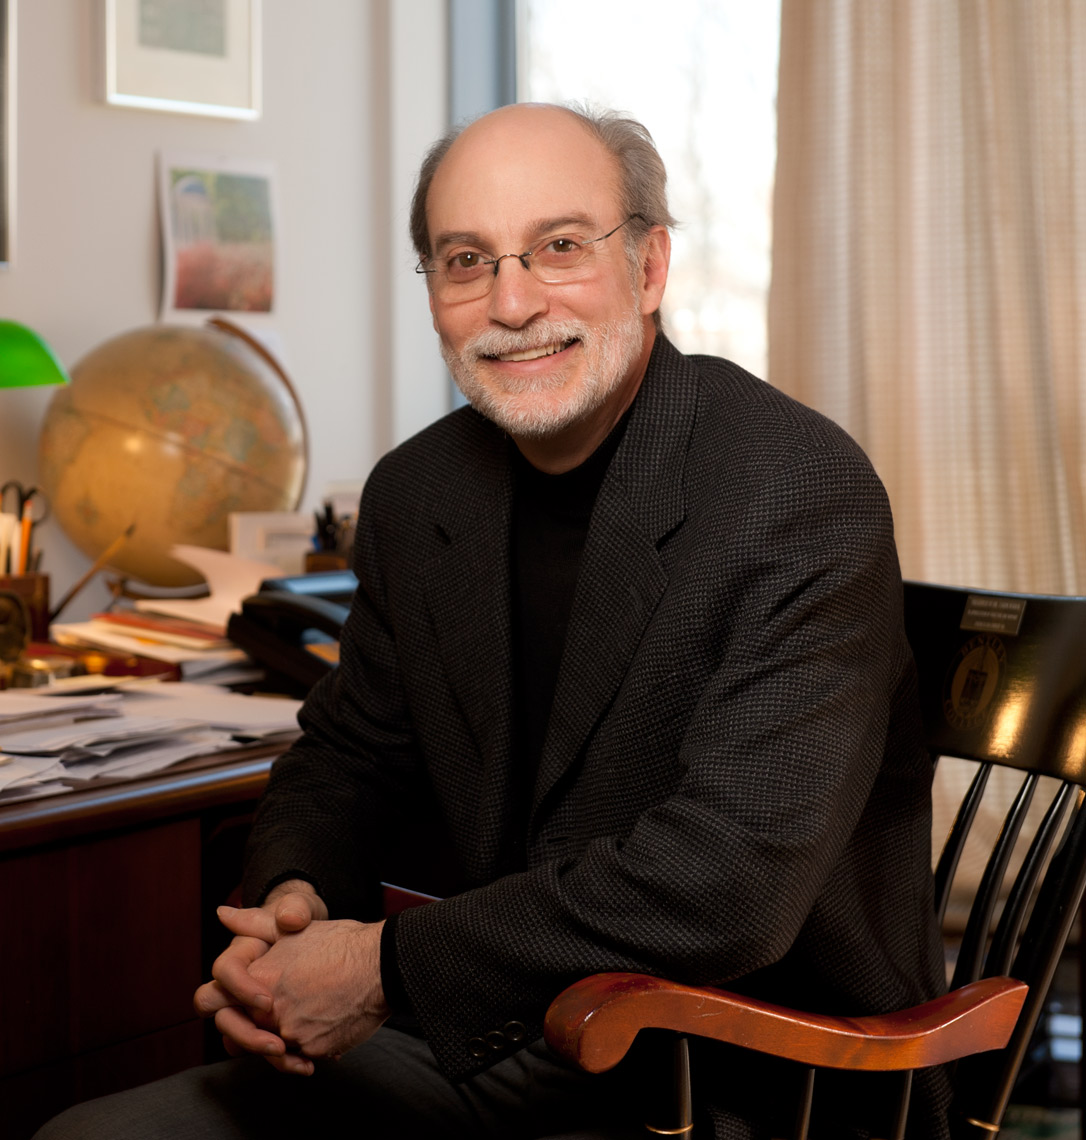 Portrait of Professor Aaron Nurick of Bentley University